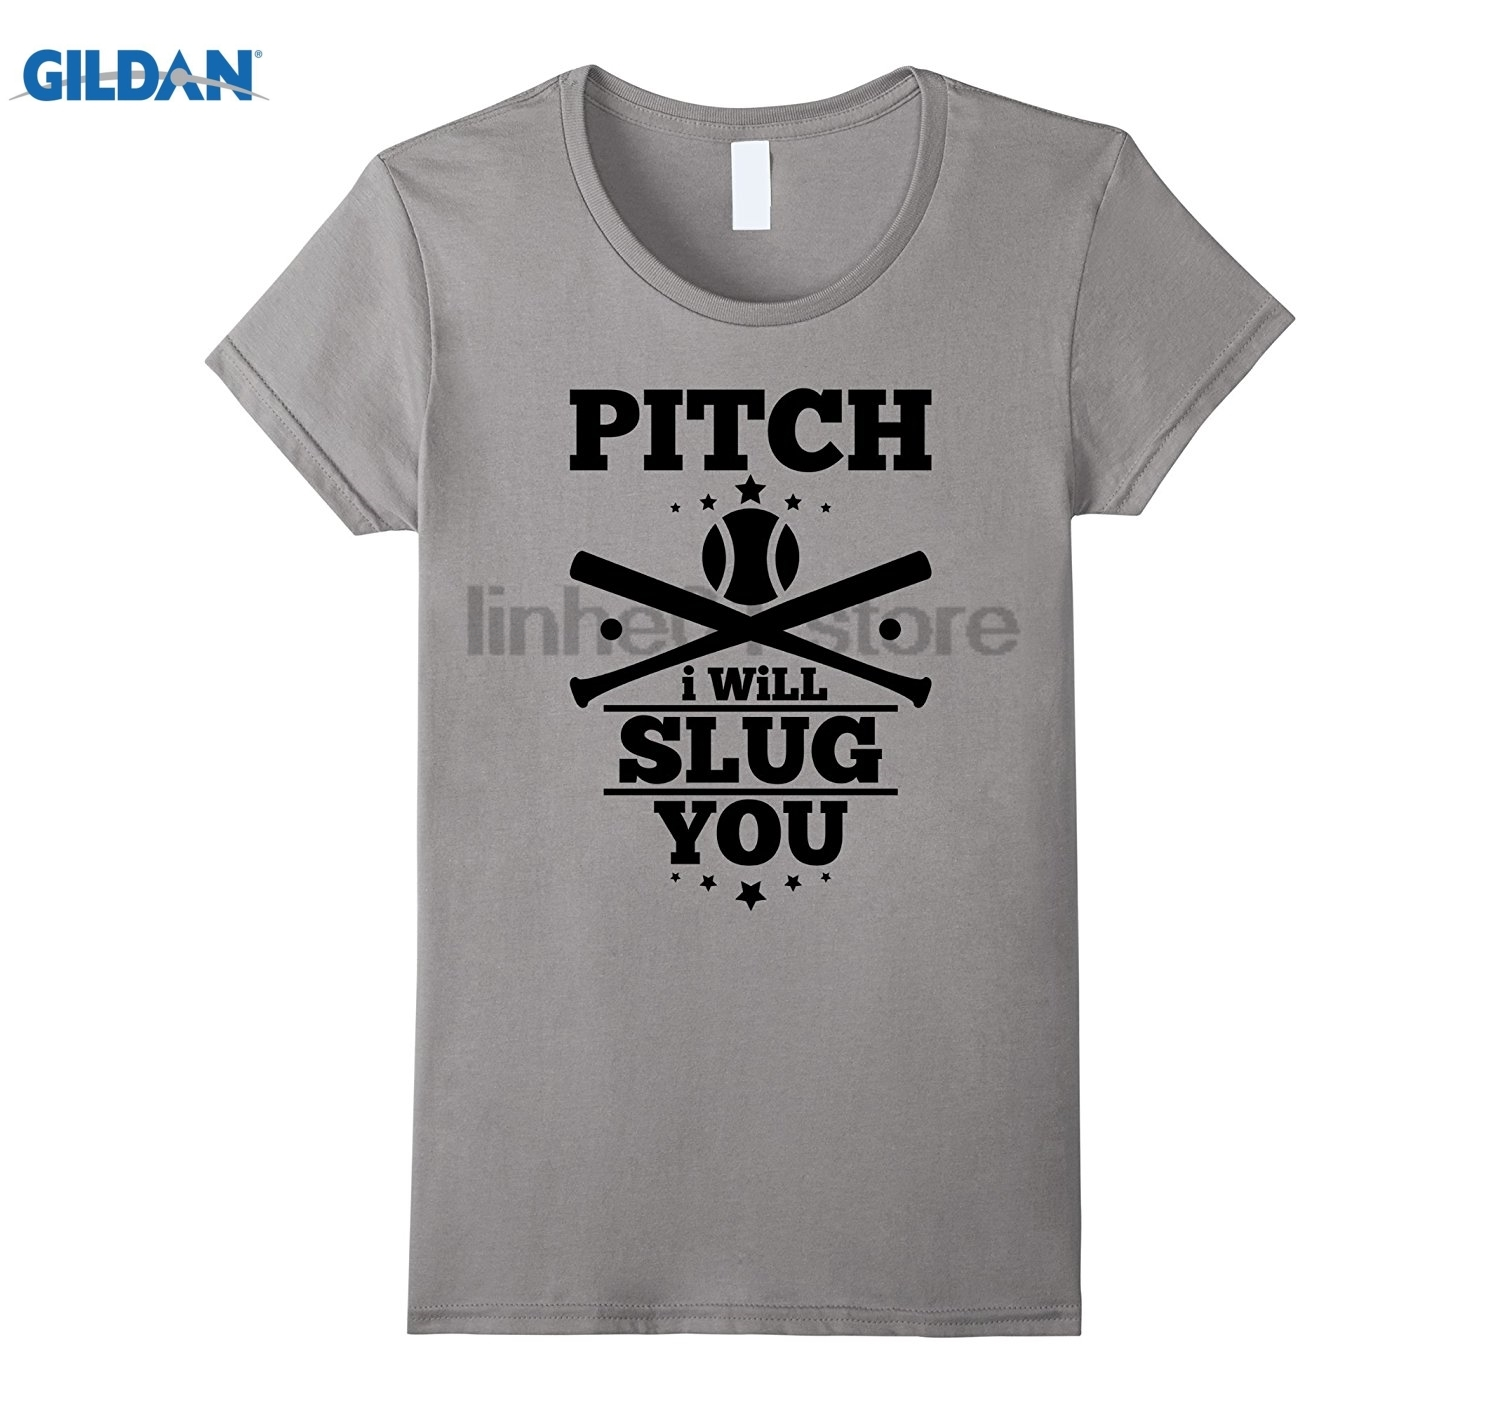 GILDAN Funny Softball Baseball Shirt Pitch I Will Slug You Bat Tee Womens T-shirt